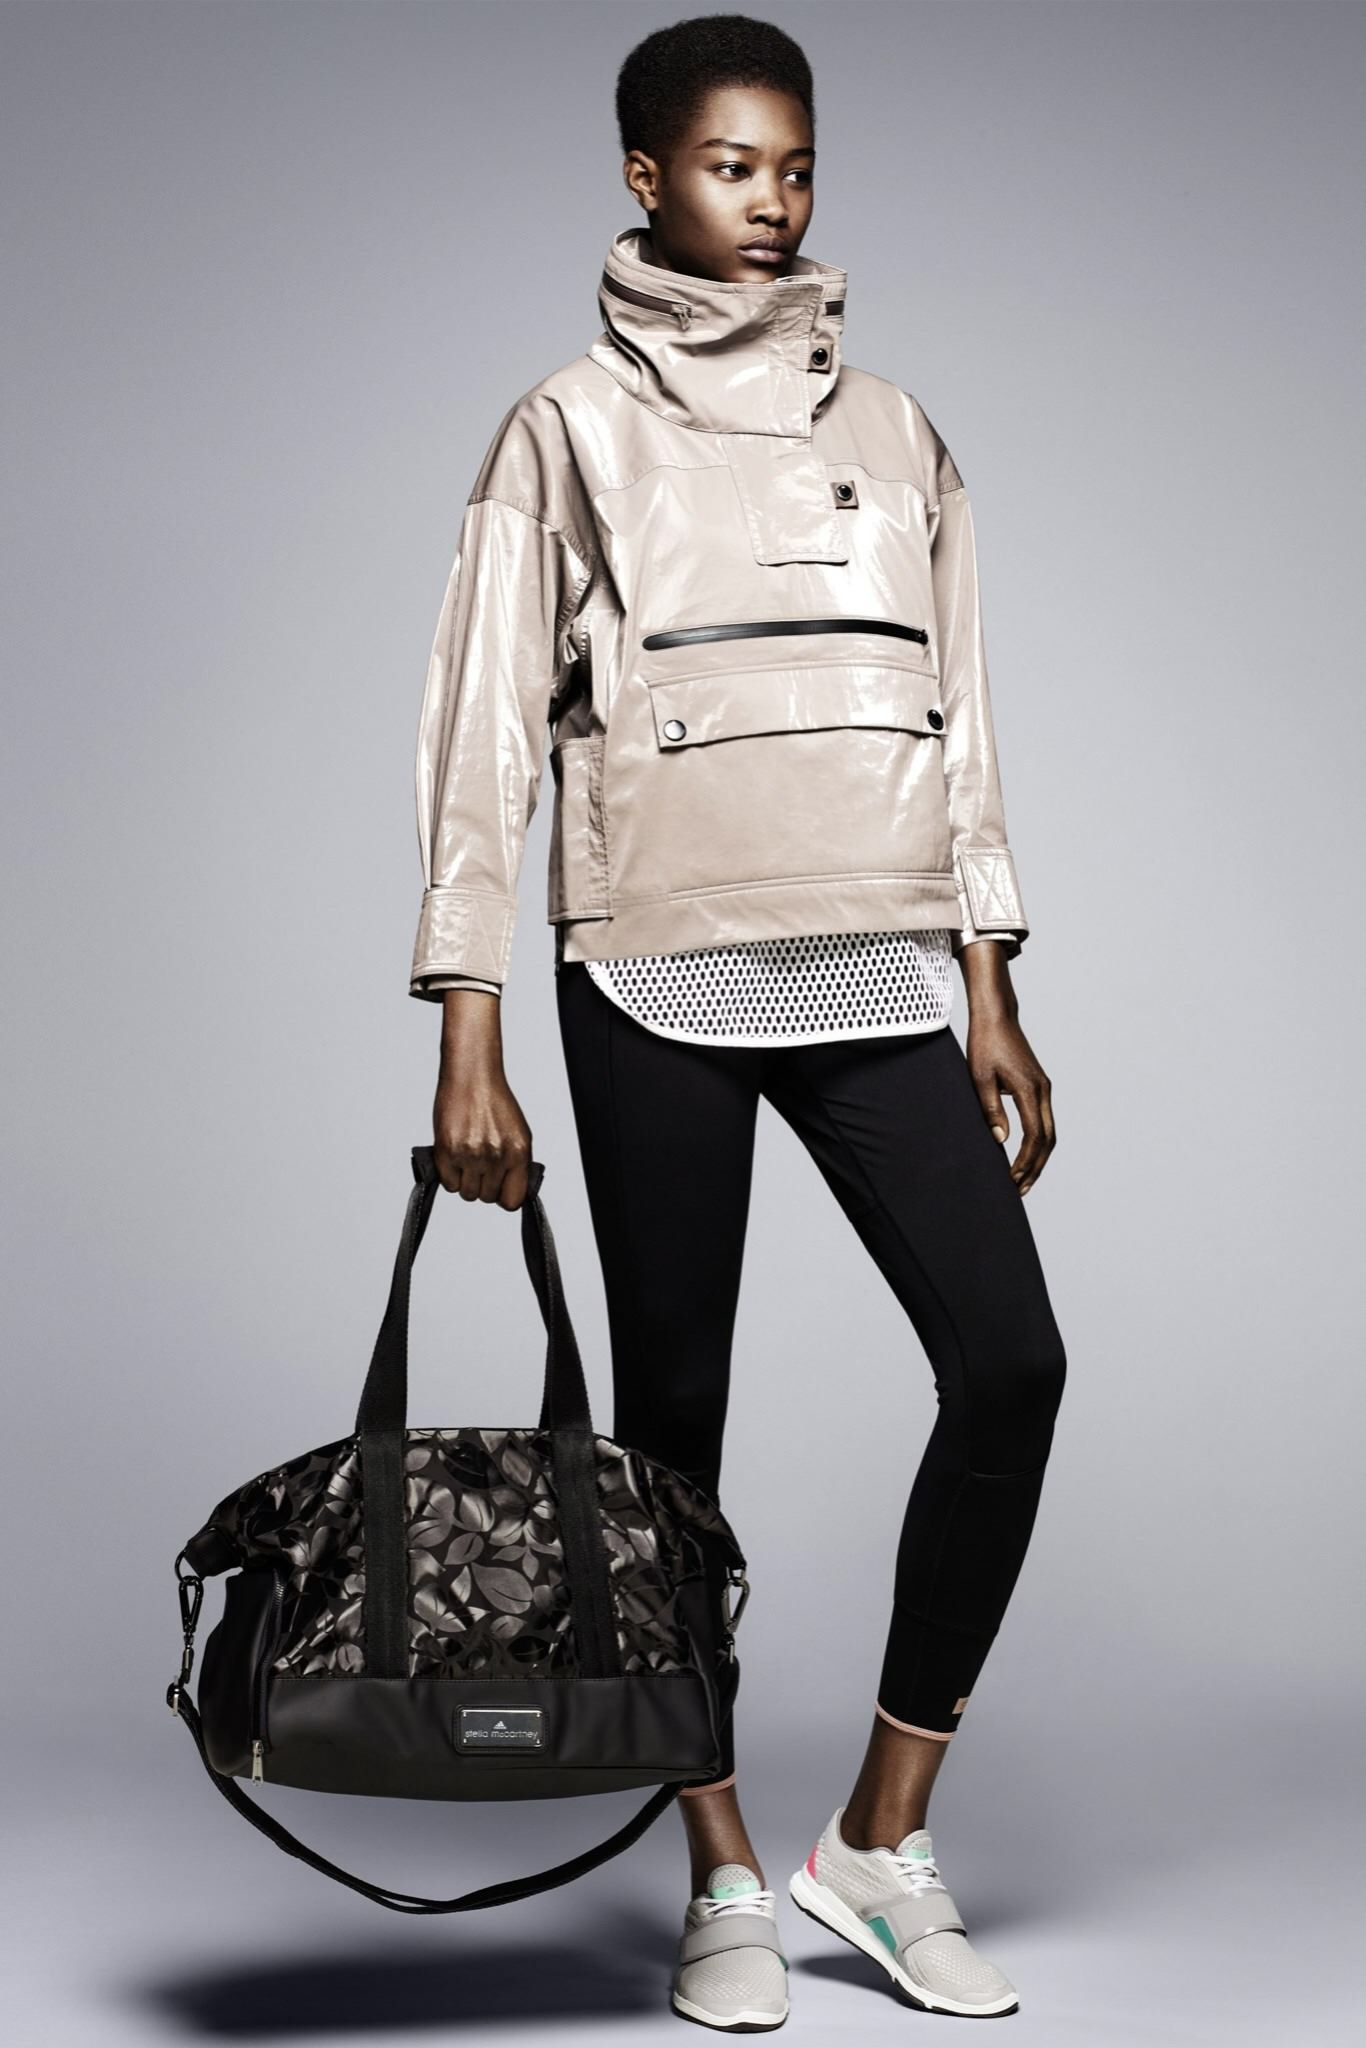 Neueste Stile Damen Adidas By Stella Mccartney Adidas